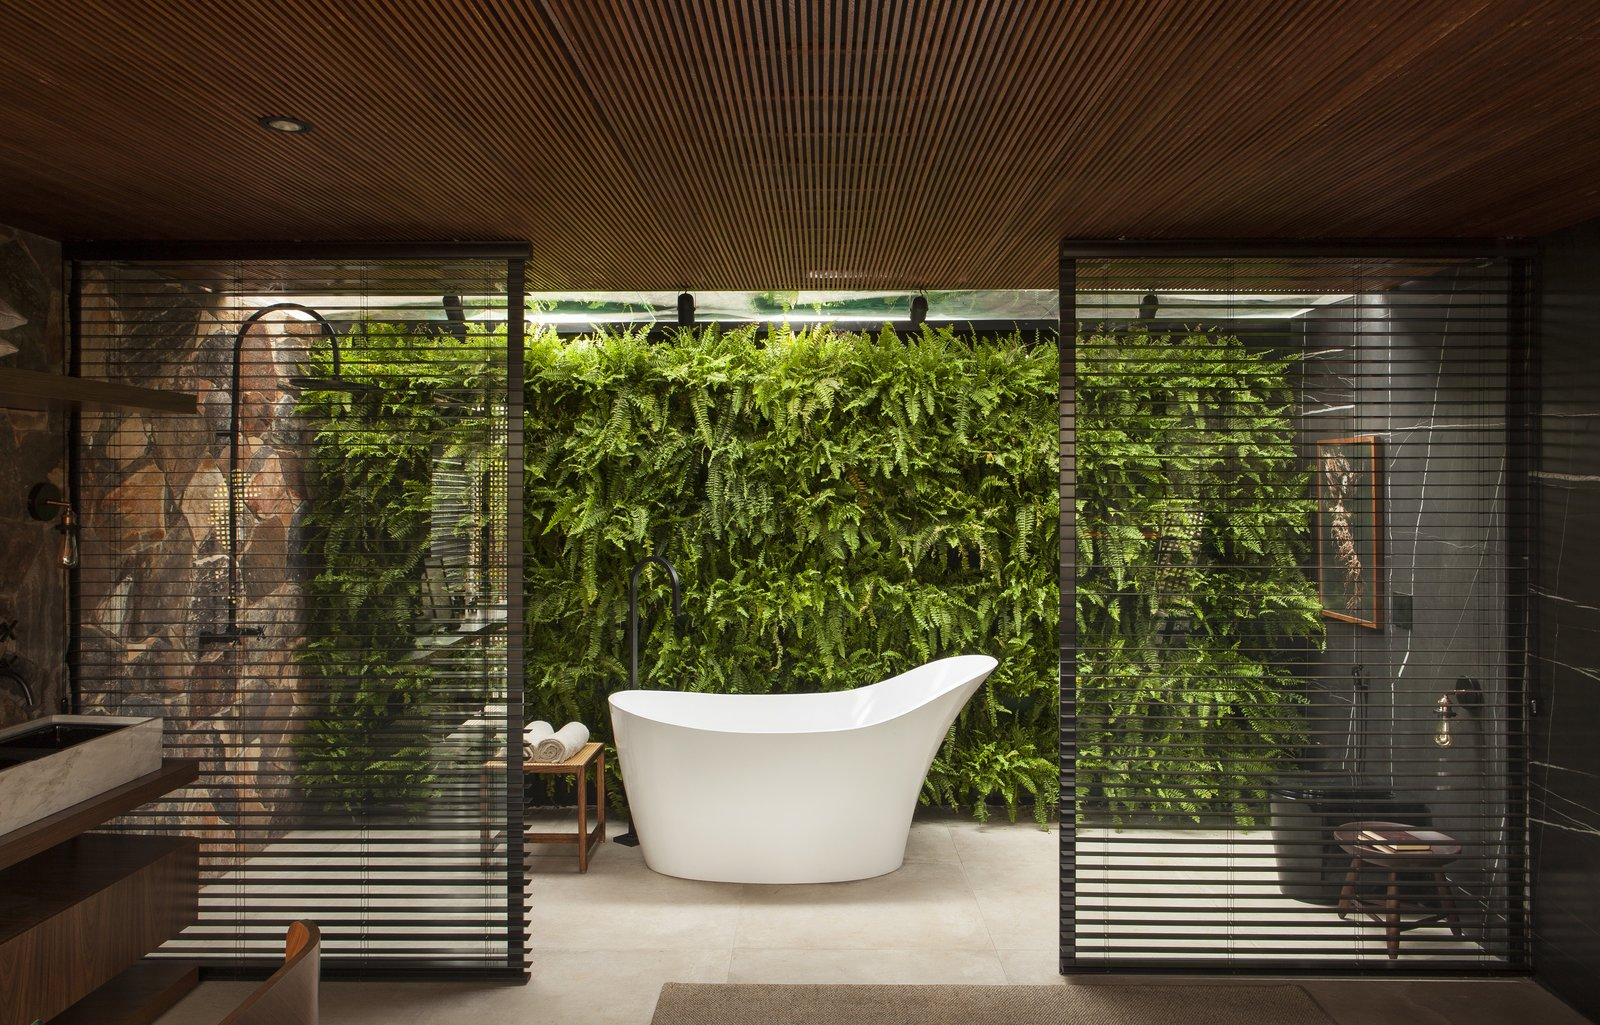 Bath Room and Freestanding Tub In the adjoining master bathroom, the soaking tub becomes a stunning focal point against the vibrant living backdrop.  Photo 10 of 14 in An Incredible Brazilian Home That Celebrates Art, Travel, and Nature